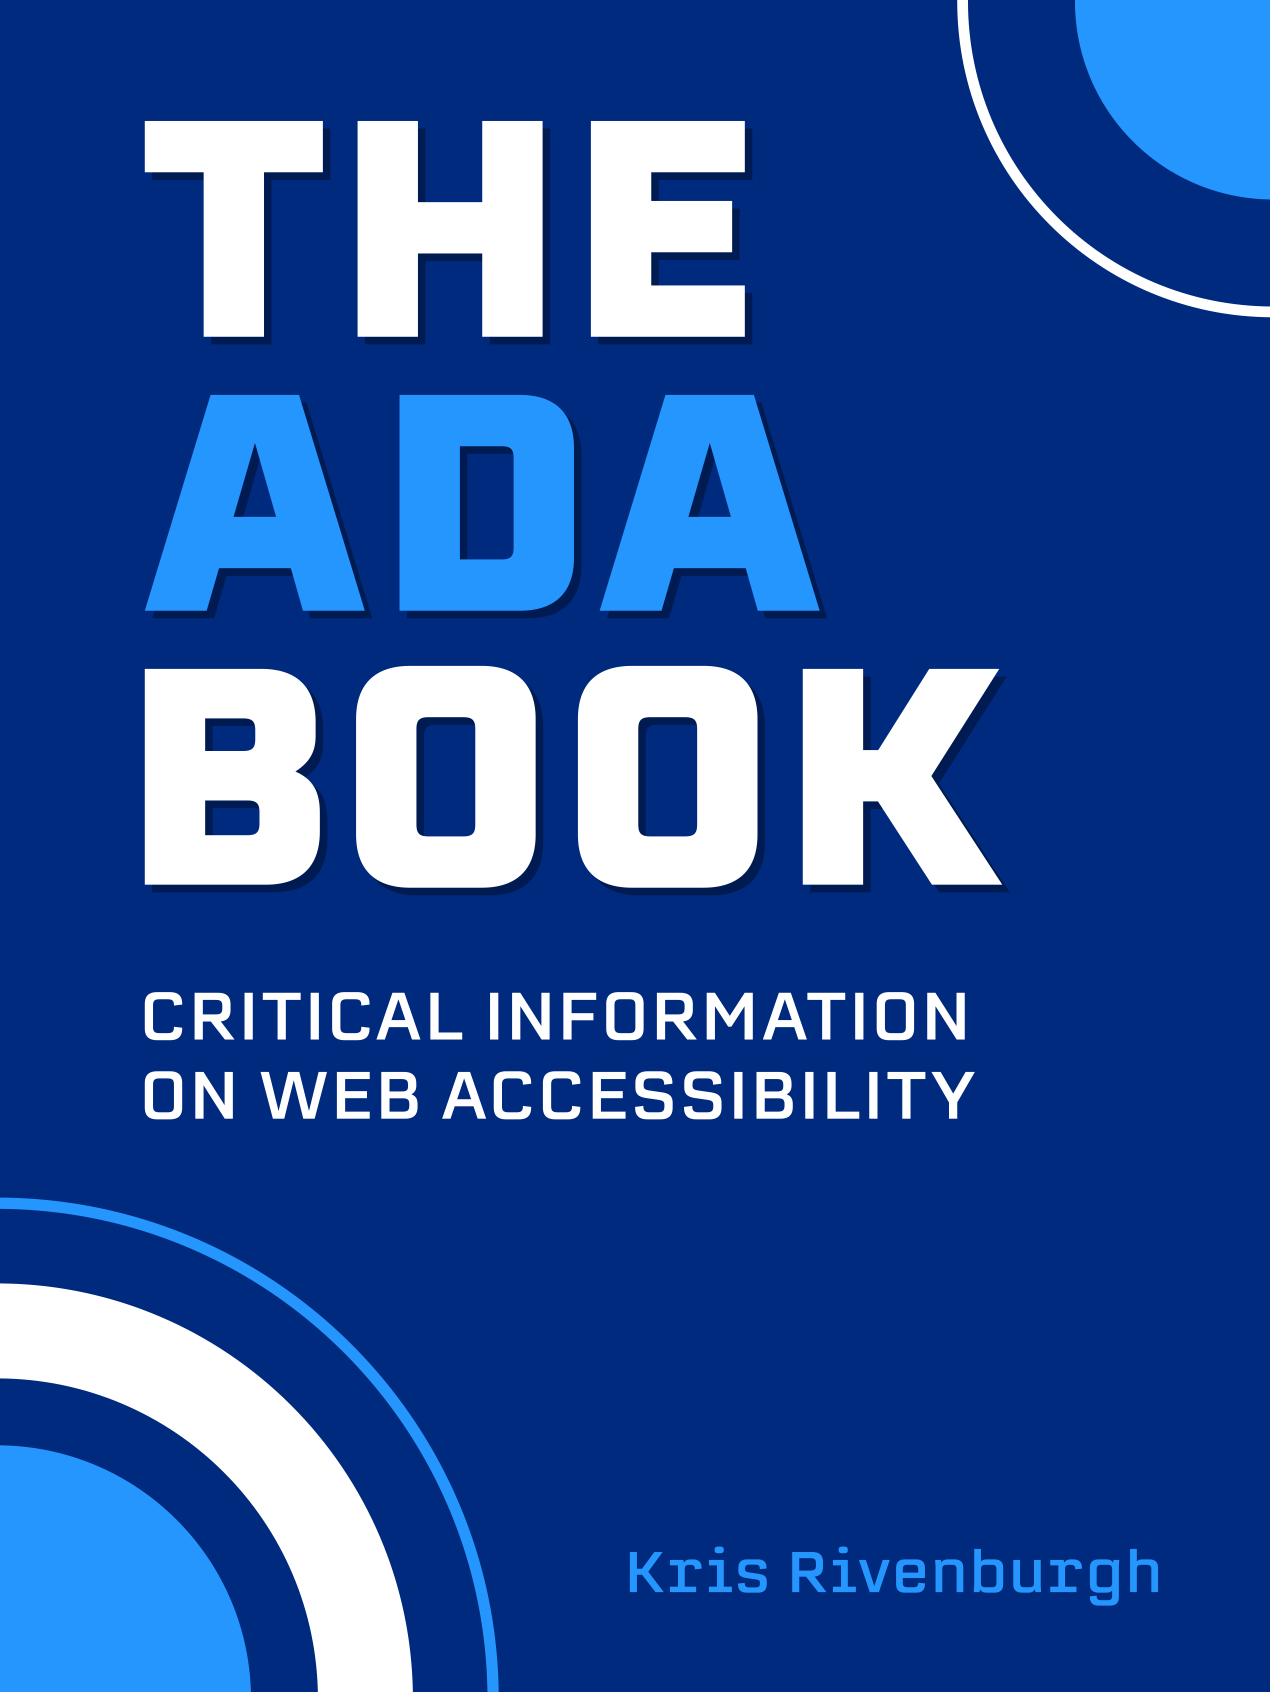 The ADA Checklist: Website Compliance Guidelines for 2019 in ...